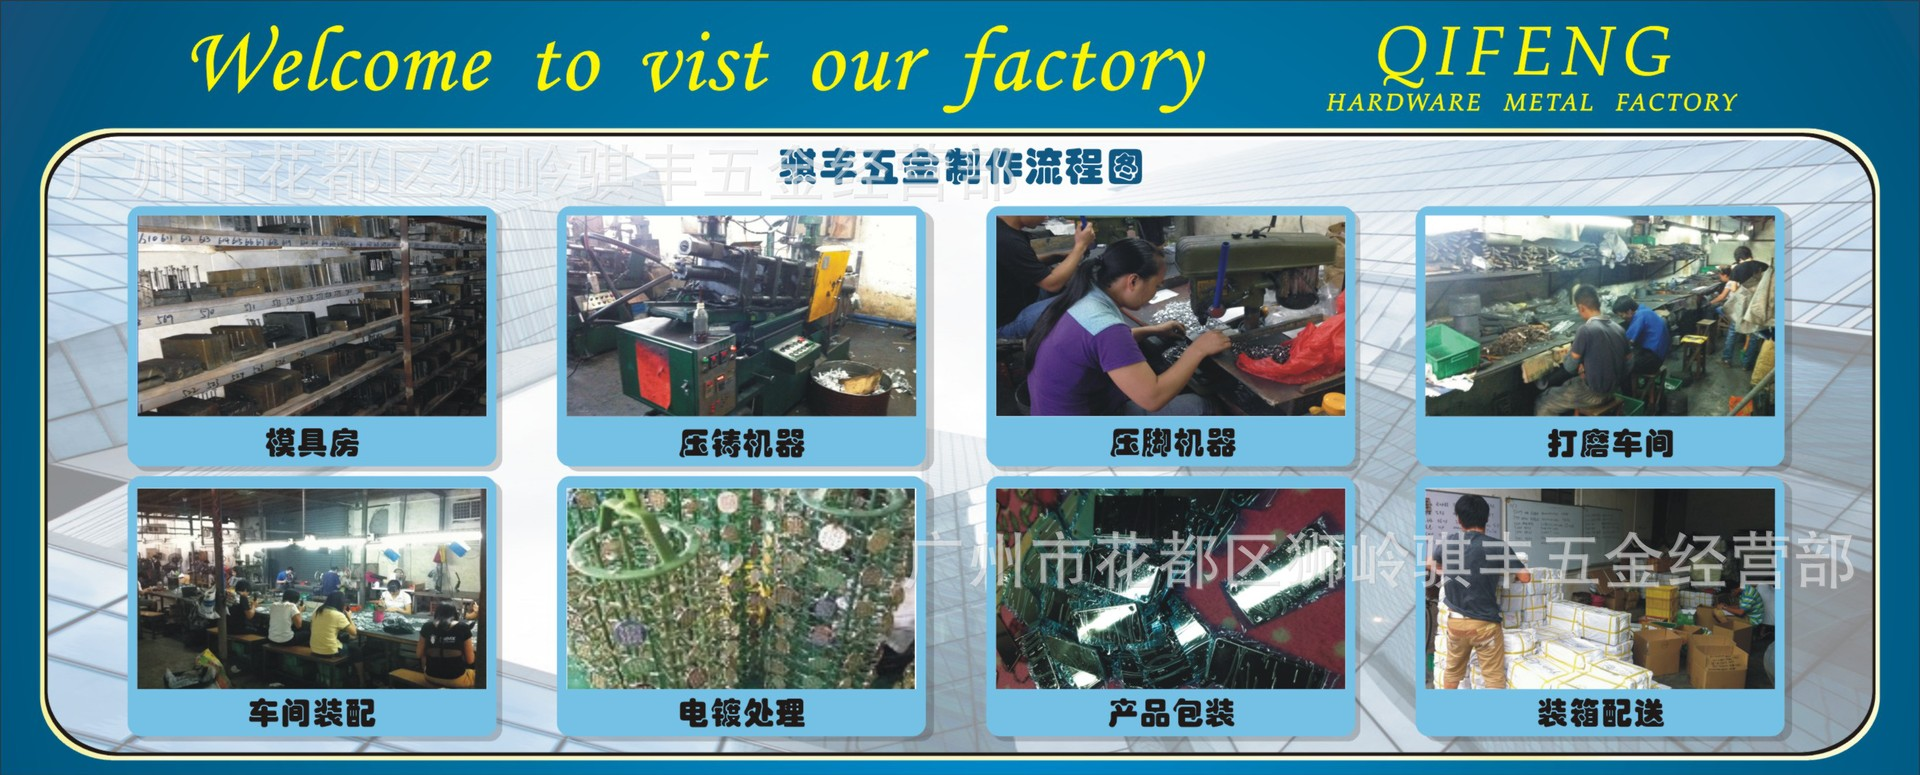 QIFENG FACTORY